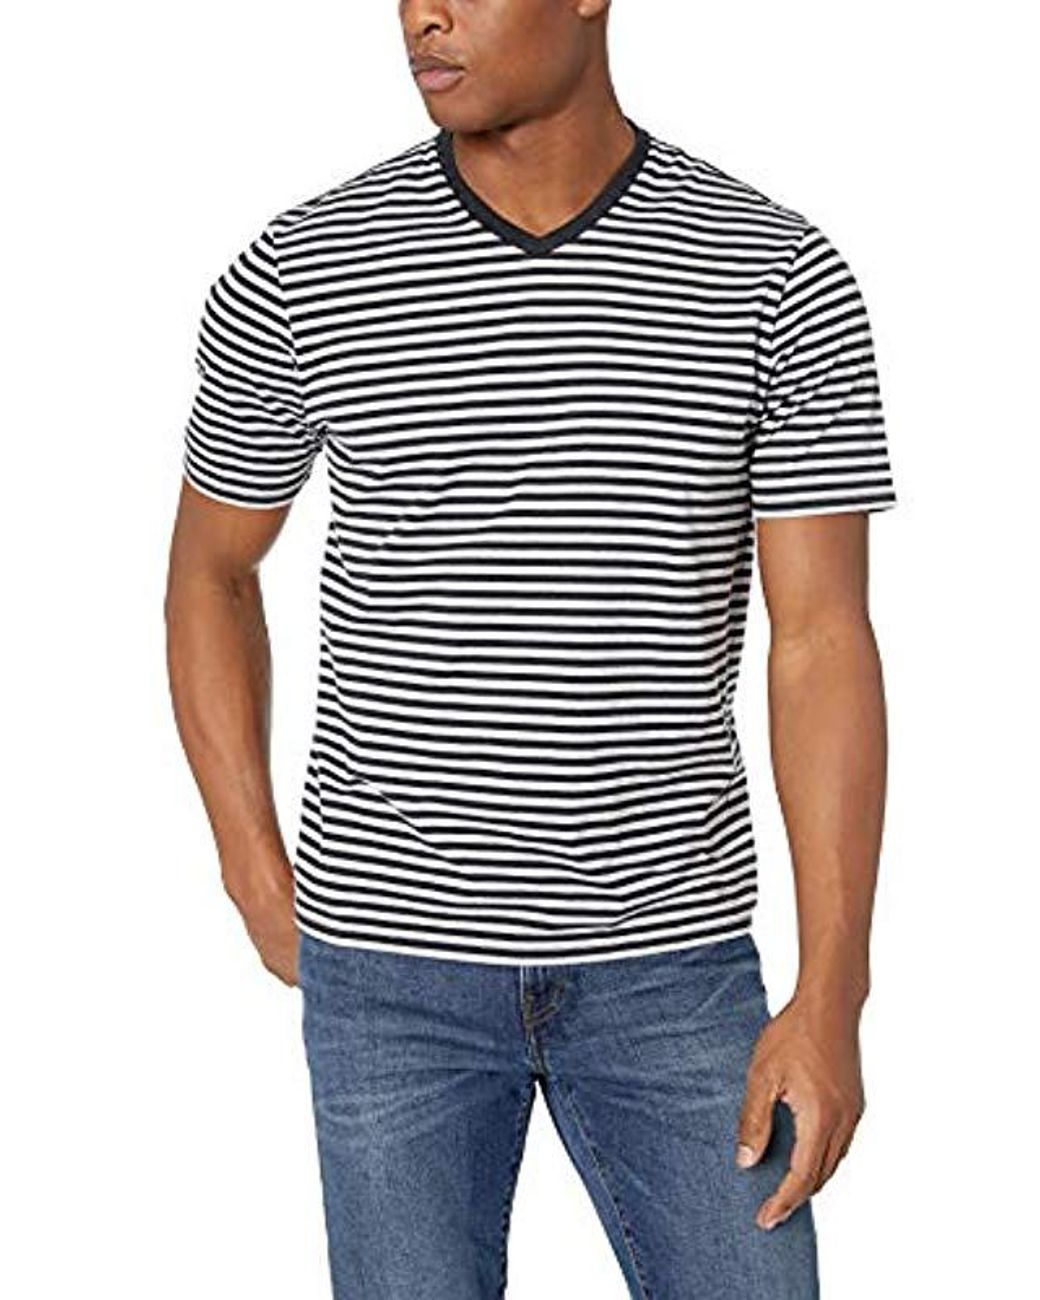 bbb1aec0f1 Lyst - Amazon Essentials Loose-fit Short-sleeve Stripe V-neck T-shirts in  Black for Men